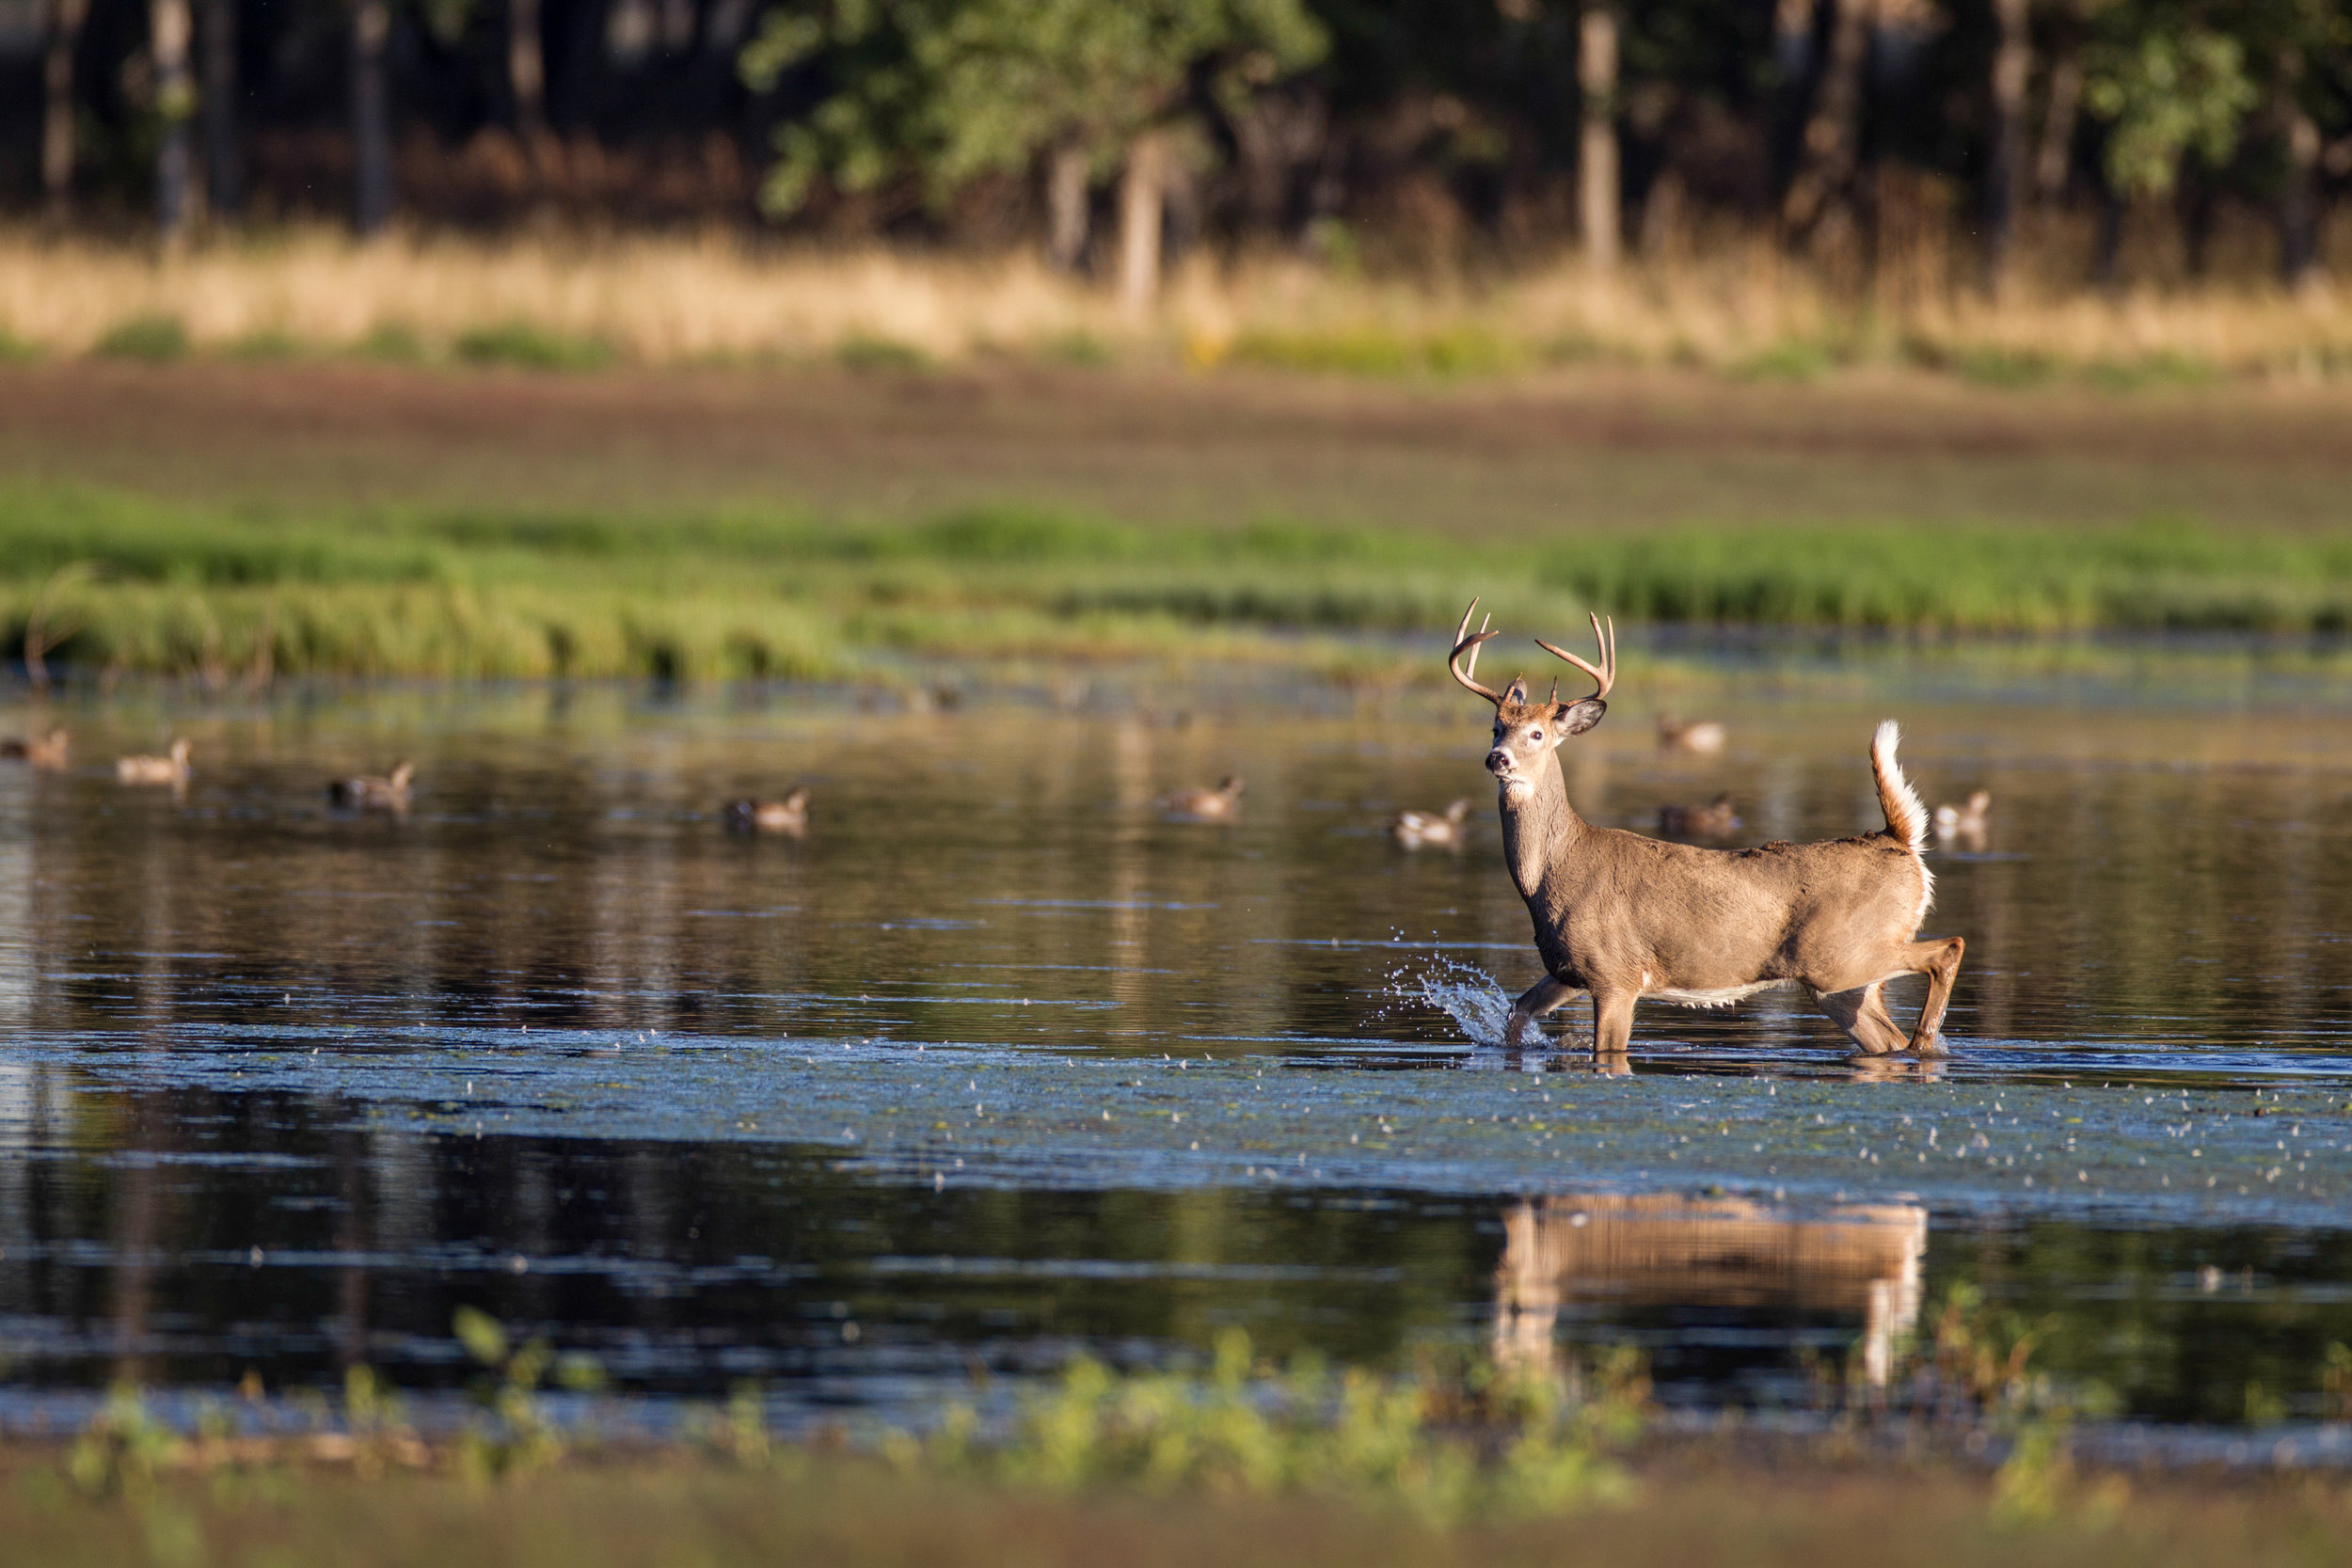 whitetail buck in water surrounded by ducks